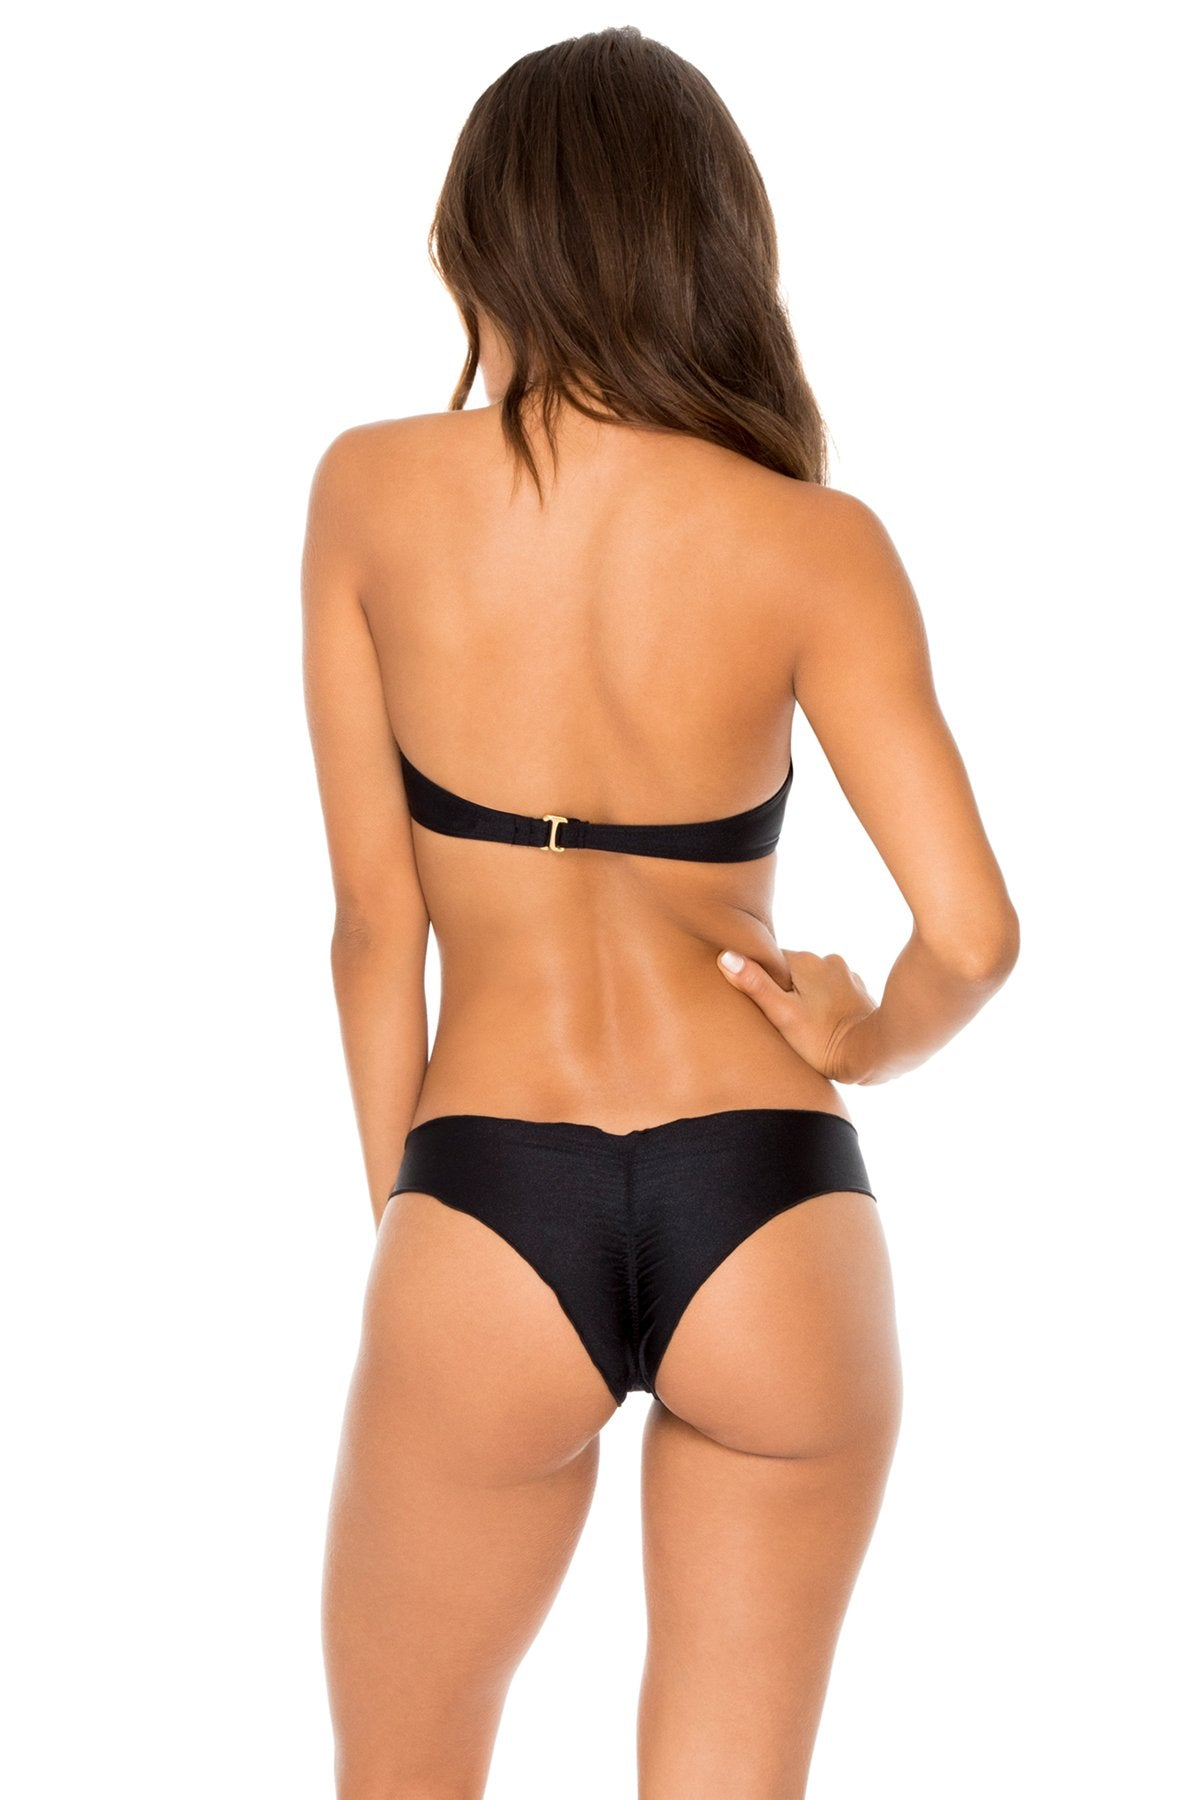 COSITA BUENA - Underwire Push Up Bandeau Top & Seamless Wavey Ruched Back Brazilian Bottom • Black